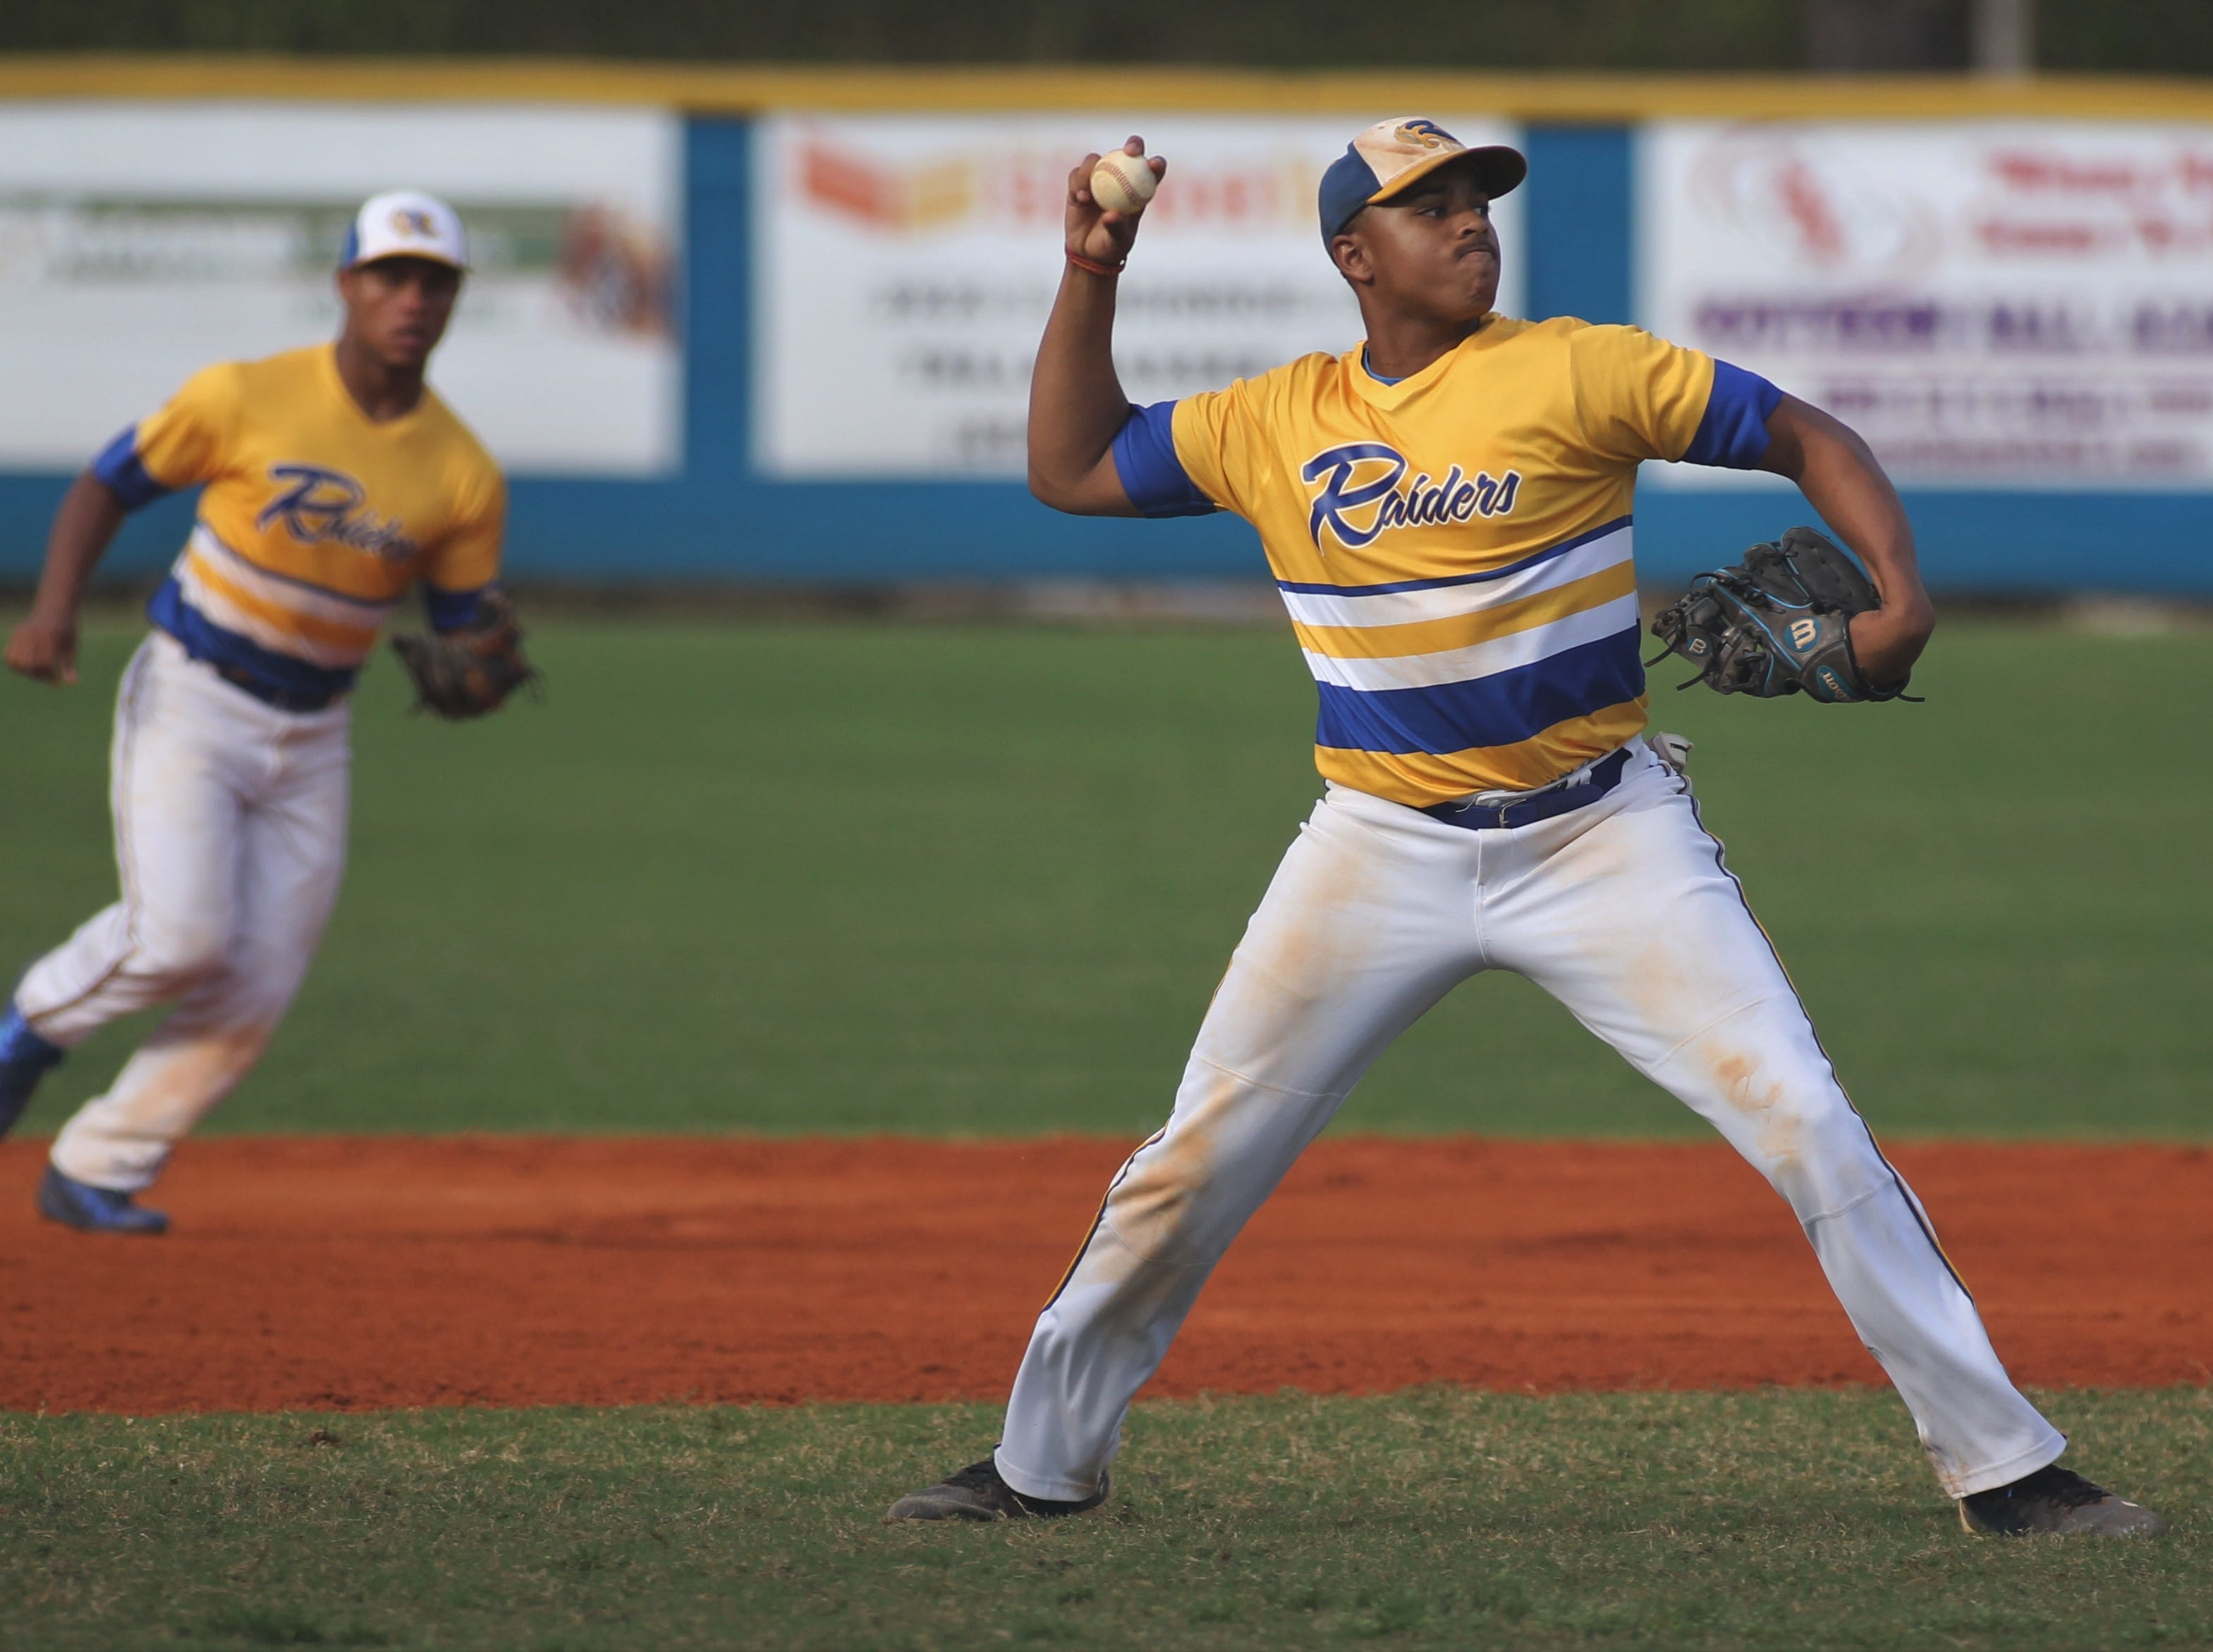 Rickards senior third baseman Norris Leland throws to first for an out as Rickards beat Gadsden County 18-0 in three innings on Friday, April 12, 2019.